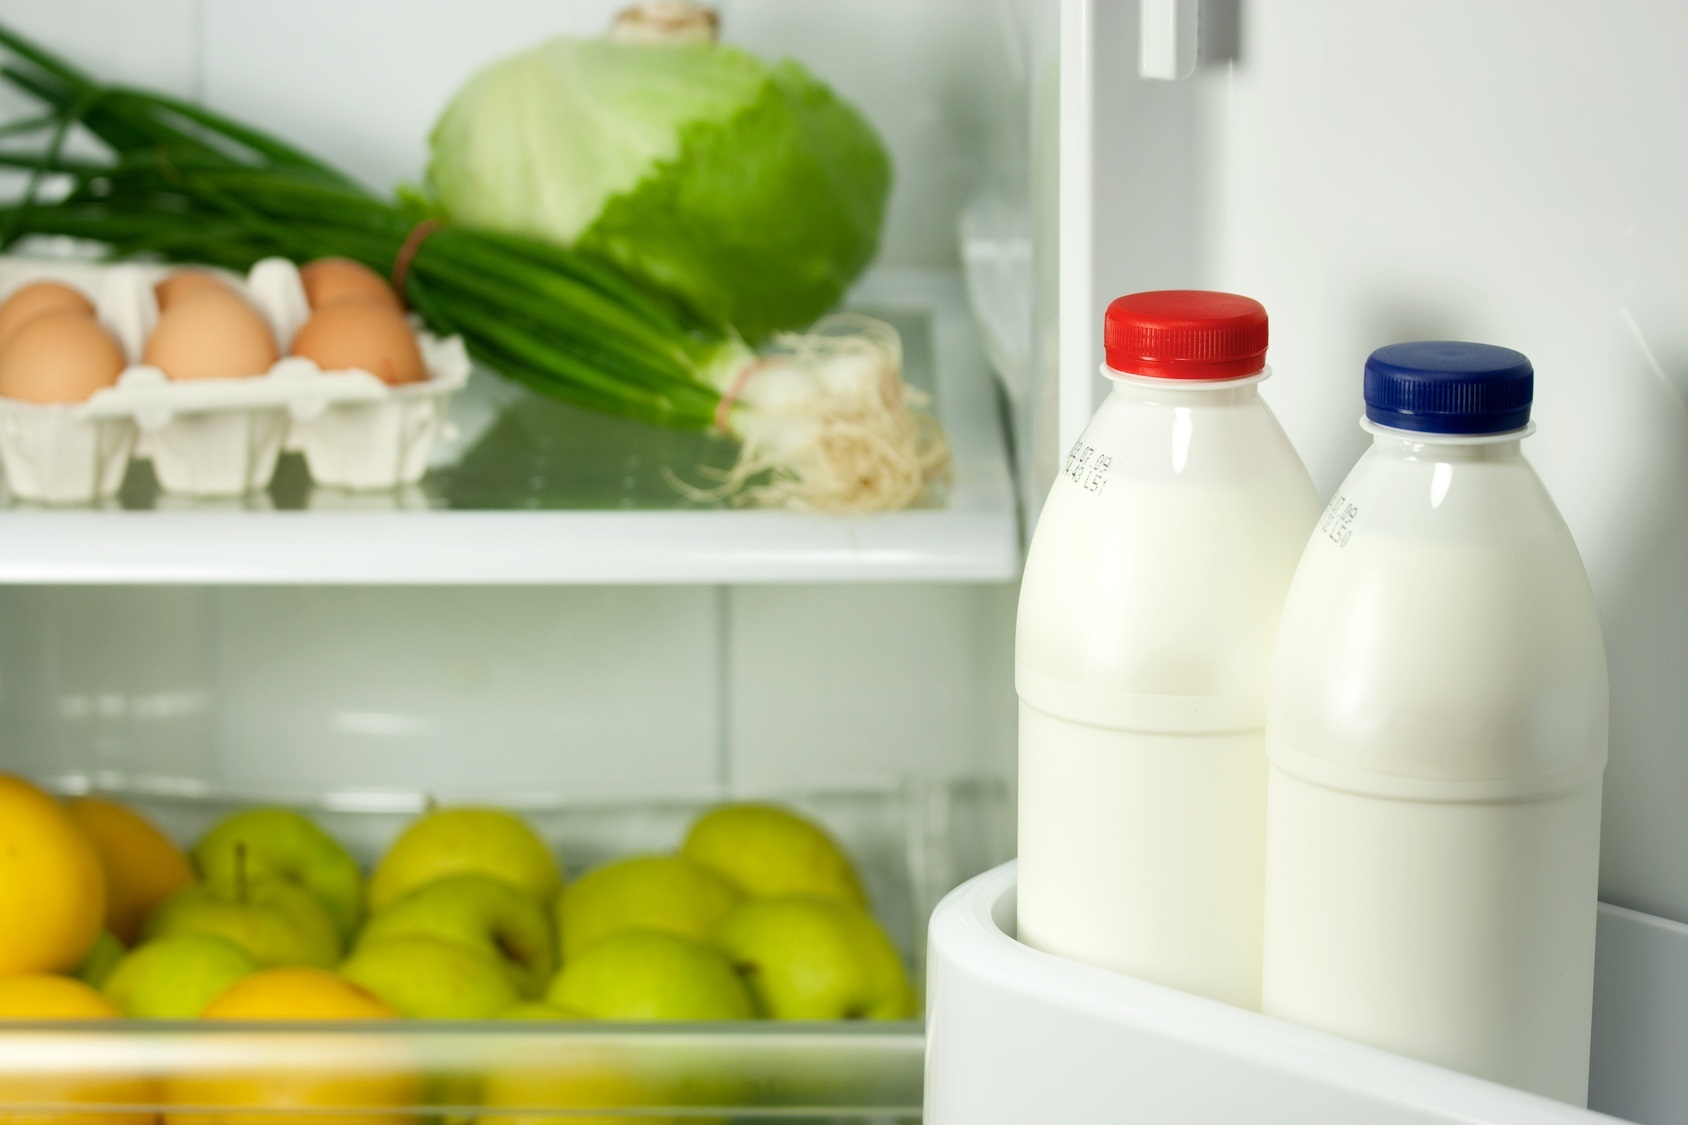 Refrigerator with healthy food